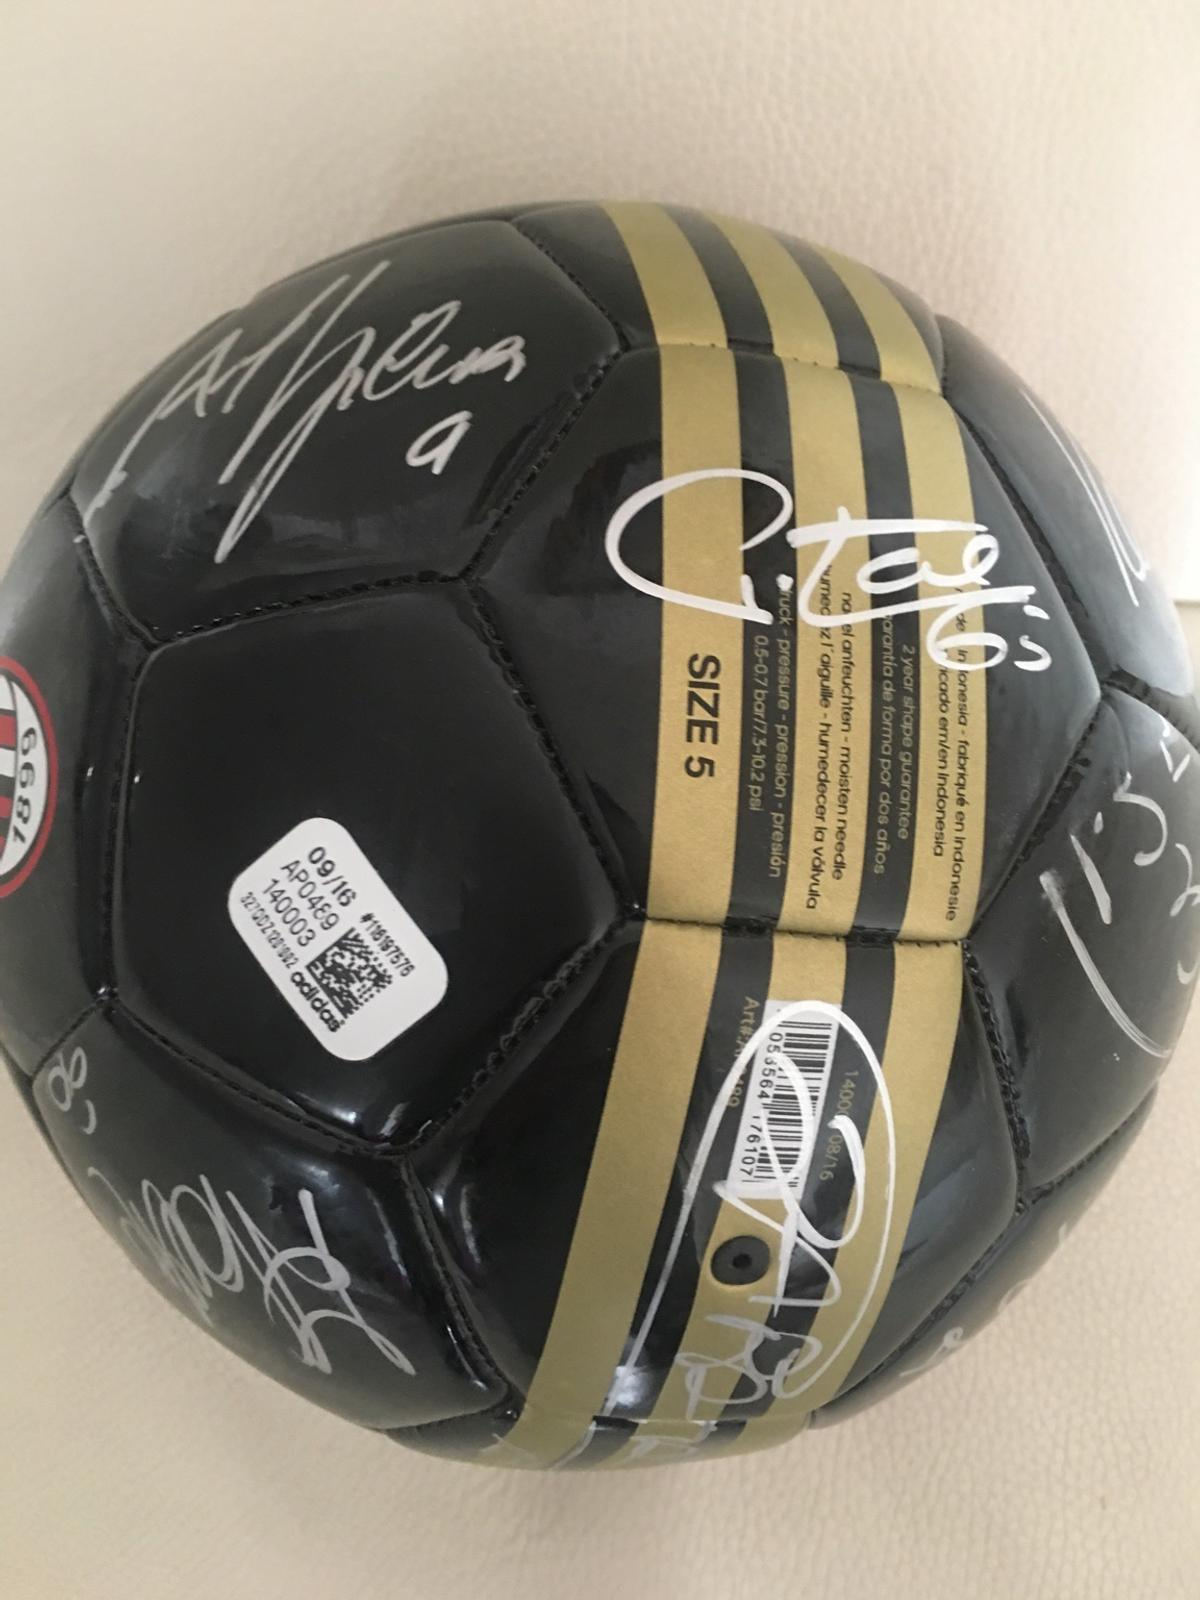 Wish drifting Handful  Pallone Milan Autografato 2016/17 in 2014 Milano for €35.00 for sale |  Shpock